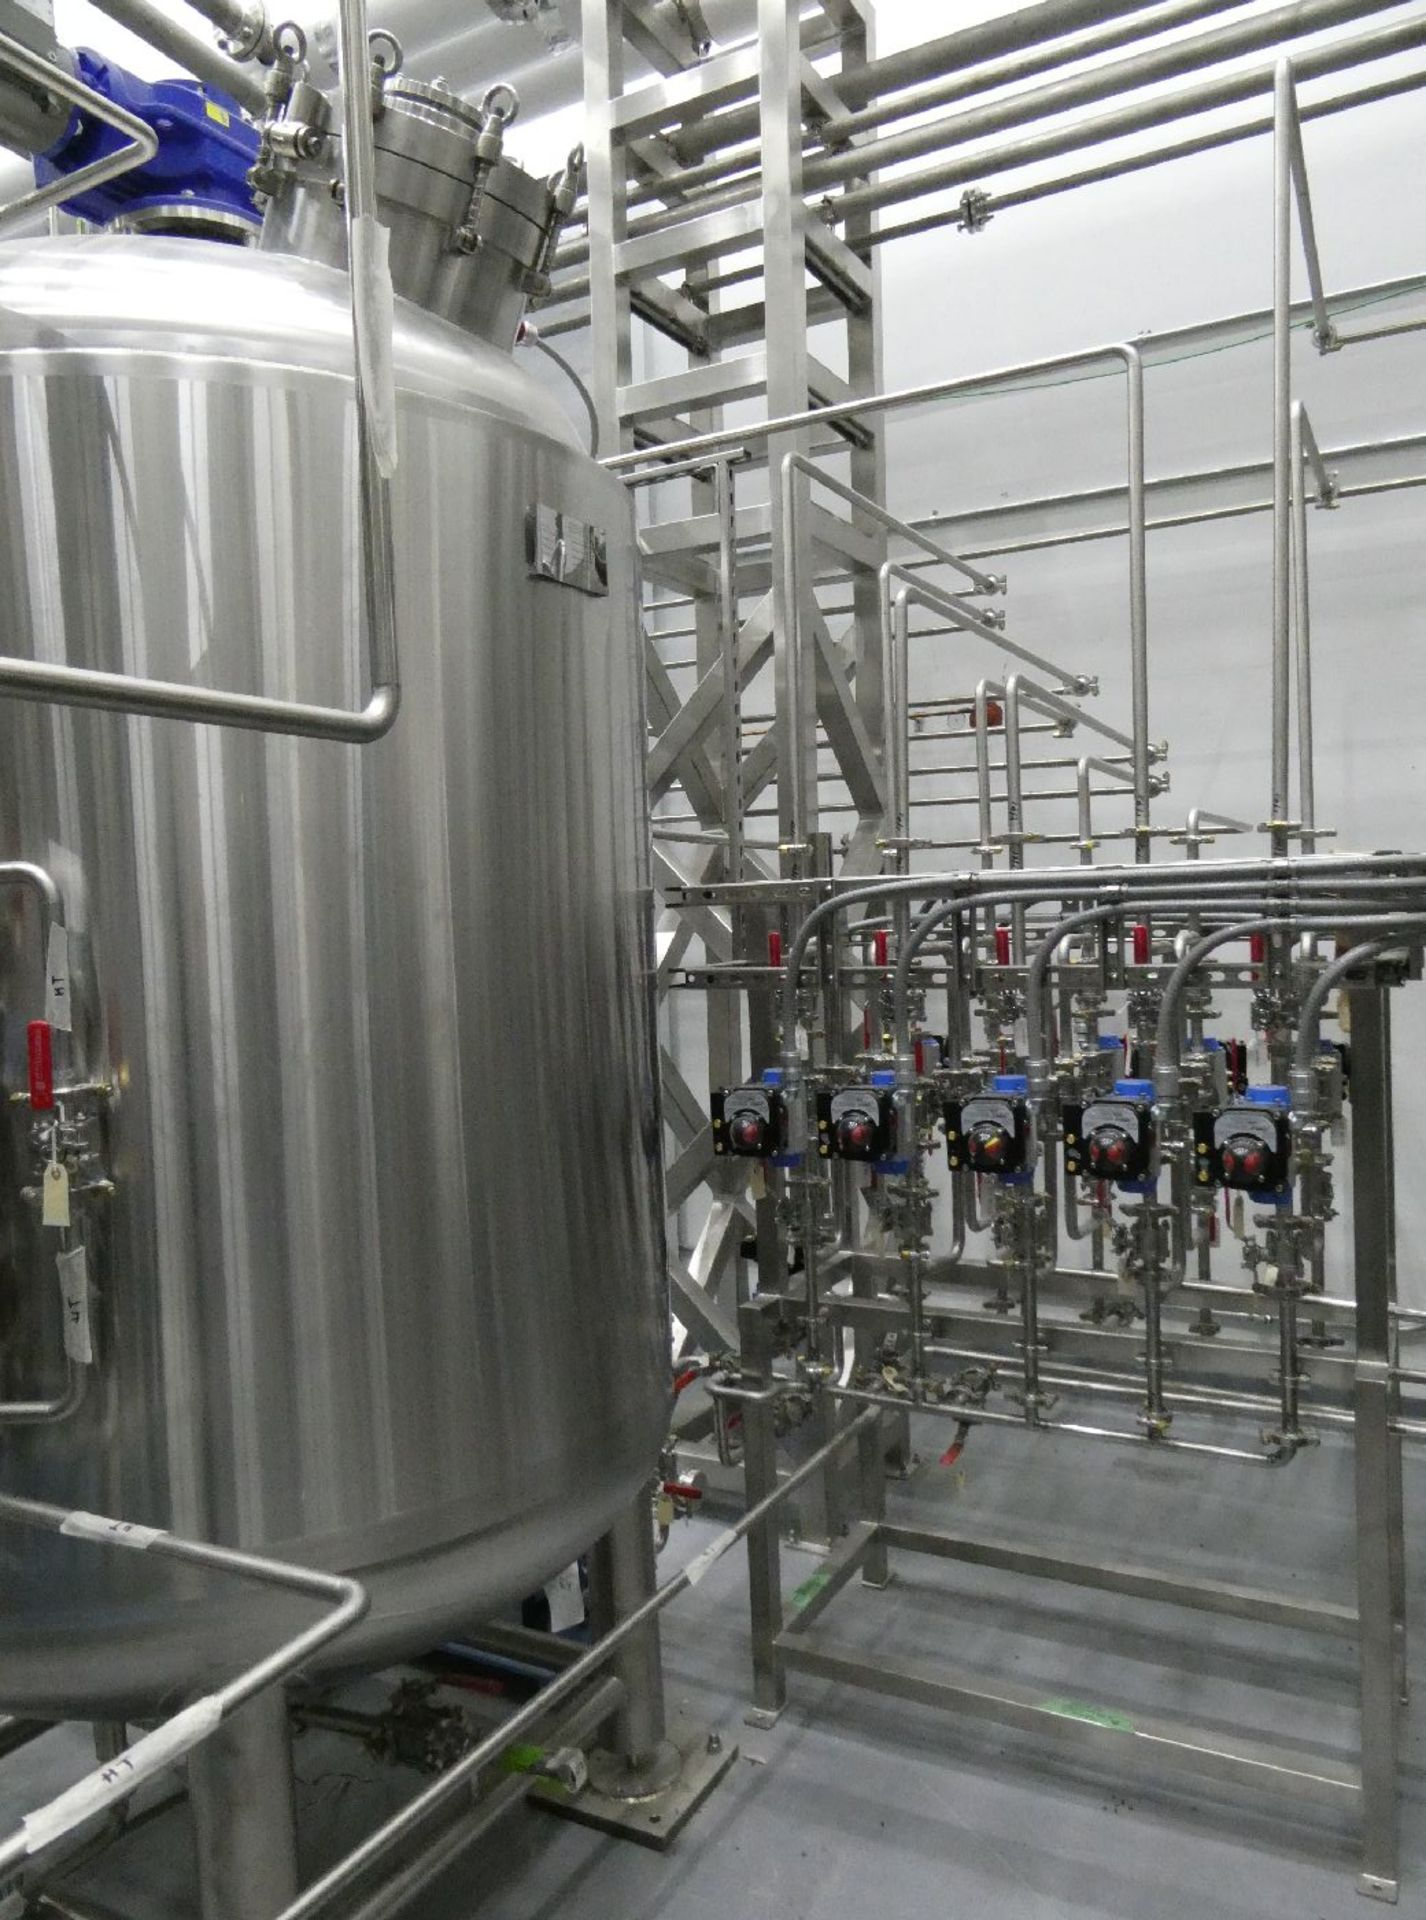 ROTAX Closed Loop Solvent Based Continuous Oil Extraction System - Image 28 of 68